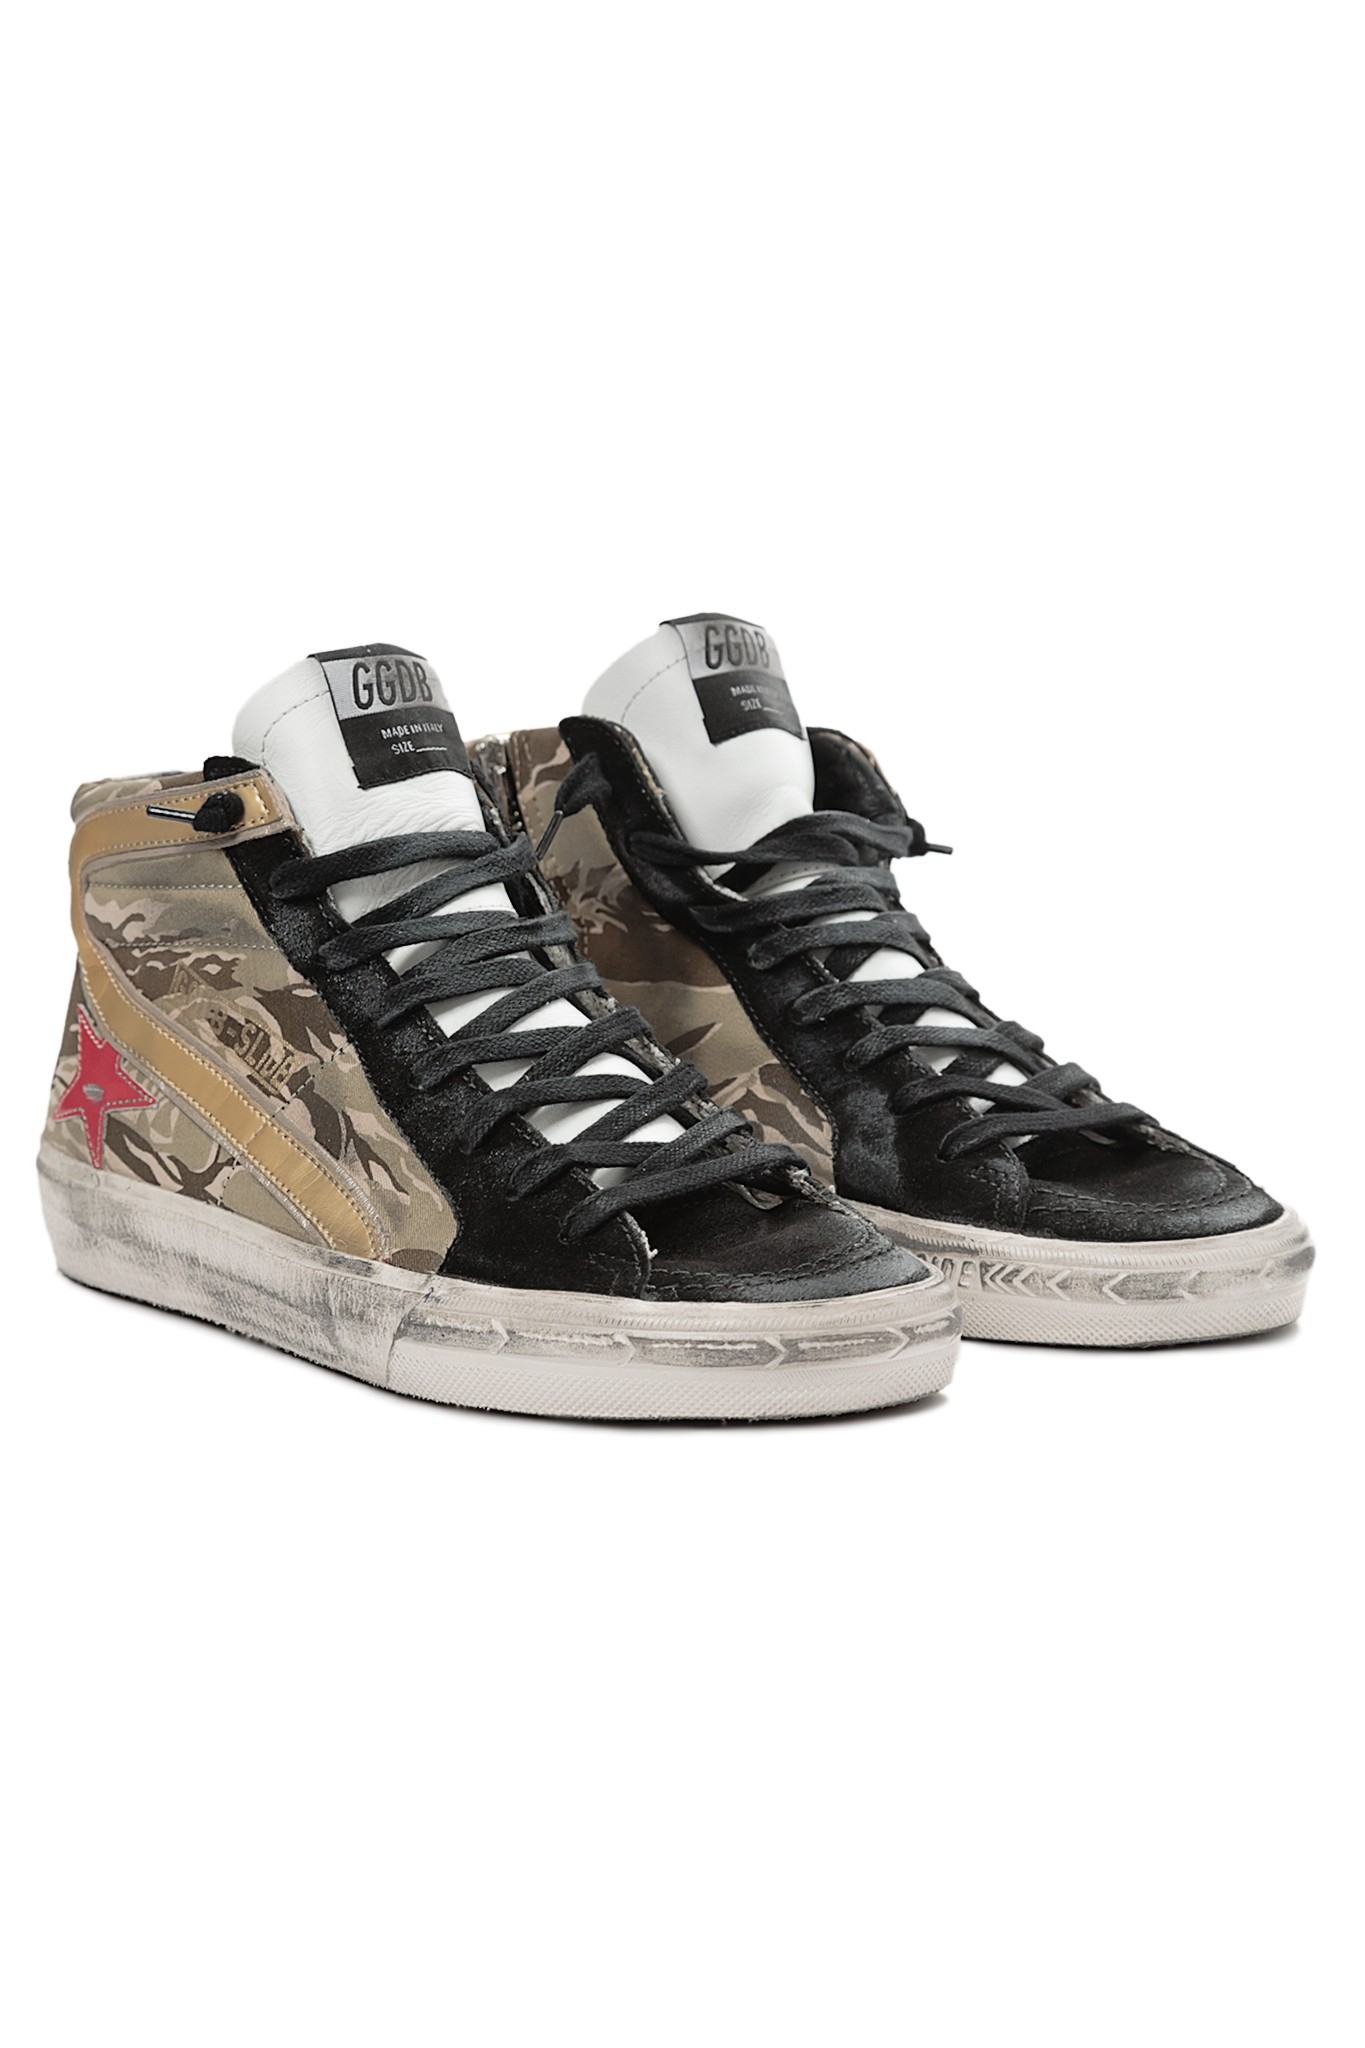 golden goose deluxe brand slide sneakers in gold camo lyst. Black Bedroom Furniture Sets. Home Design Ideas